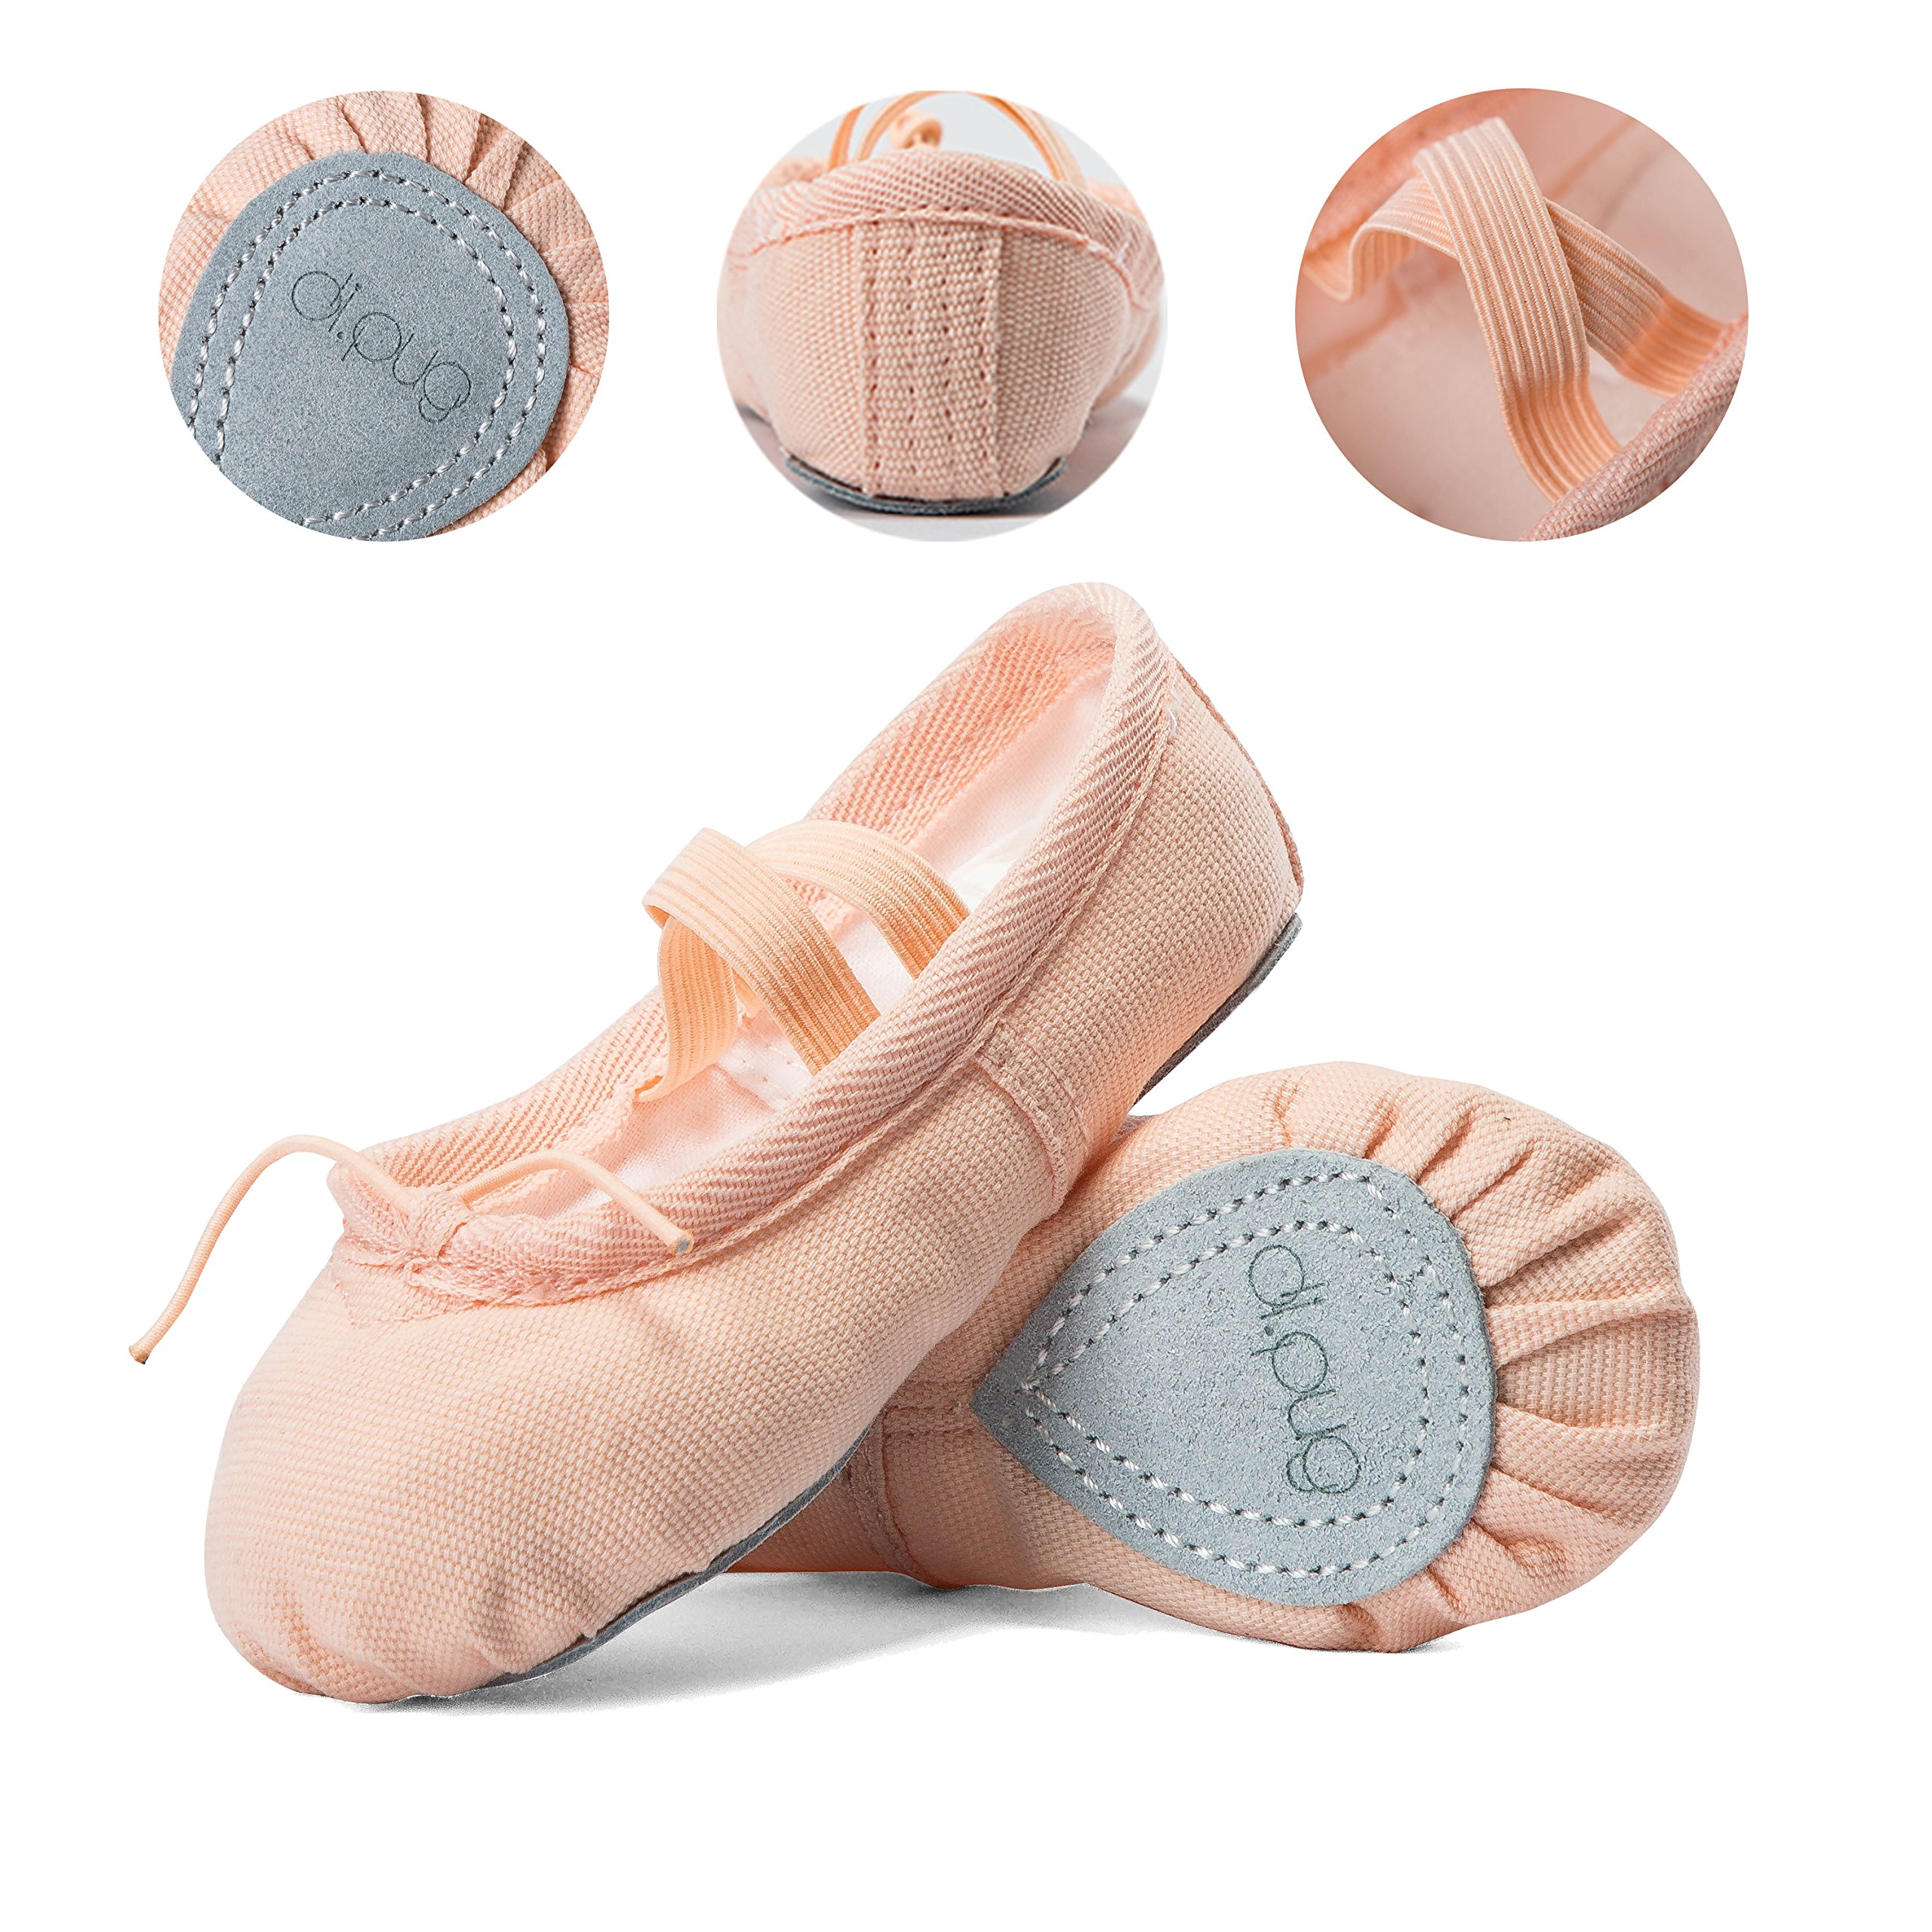 Ballet Shoes Ballet Slippers Girls Toddlers Canvas Dance Shoes Yoga Shoe (Toddler/Little Kid/Big Kid/Women) (US 8.5M Toddler, Ballet Pink)